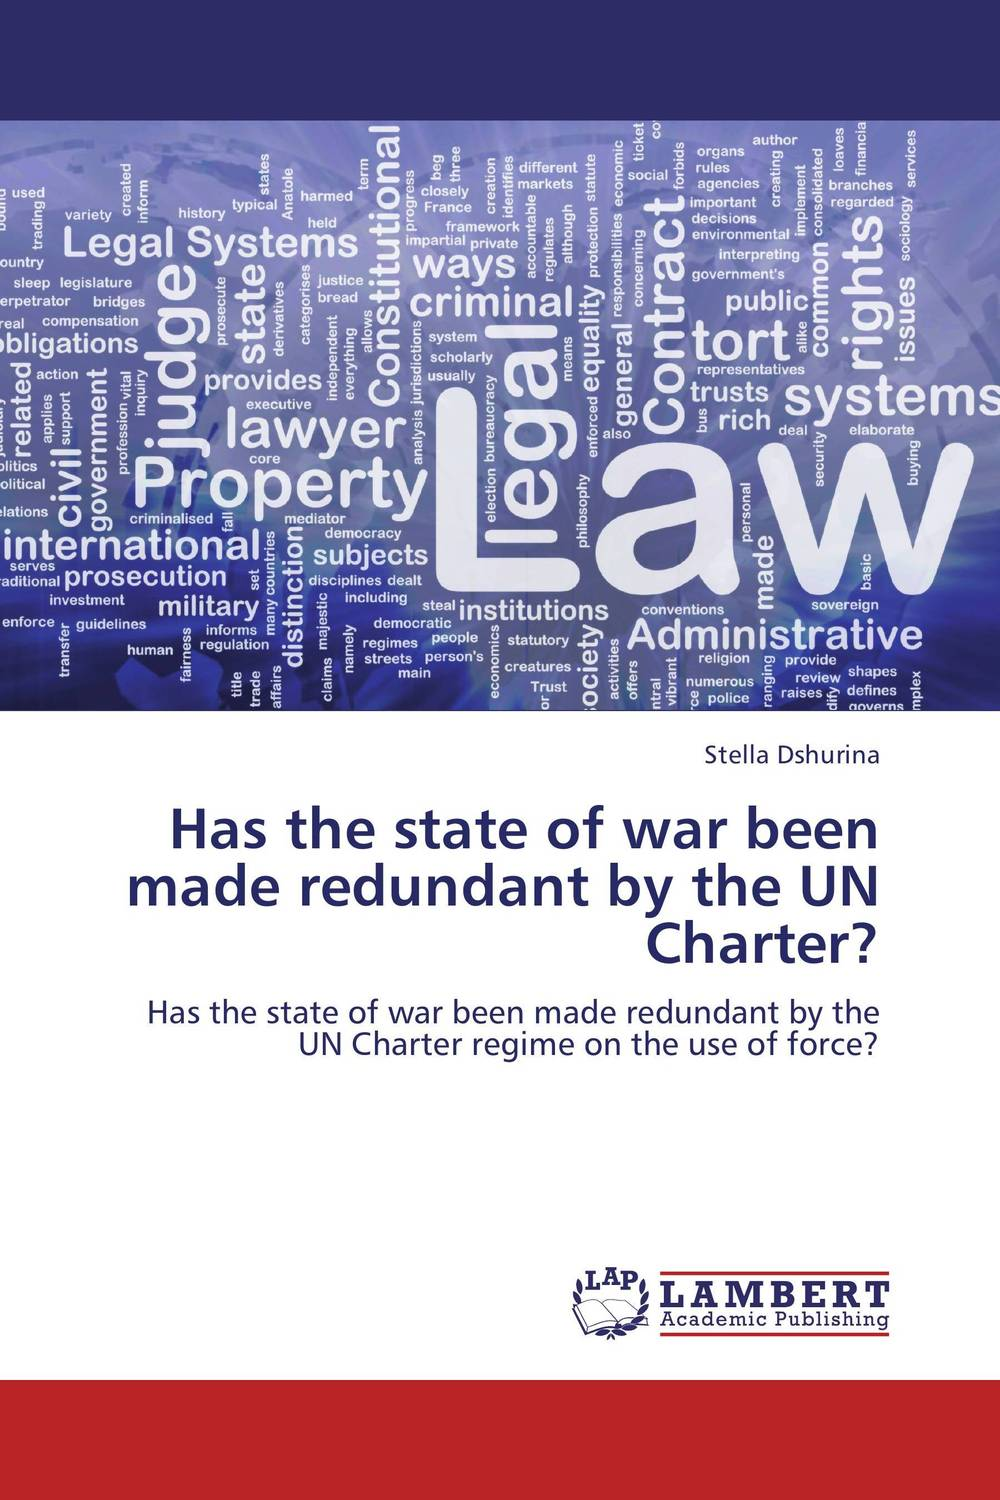 Has the state of war been made redundant by the UN Charter? state by state mechanics lien